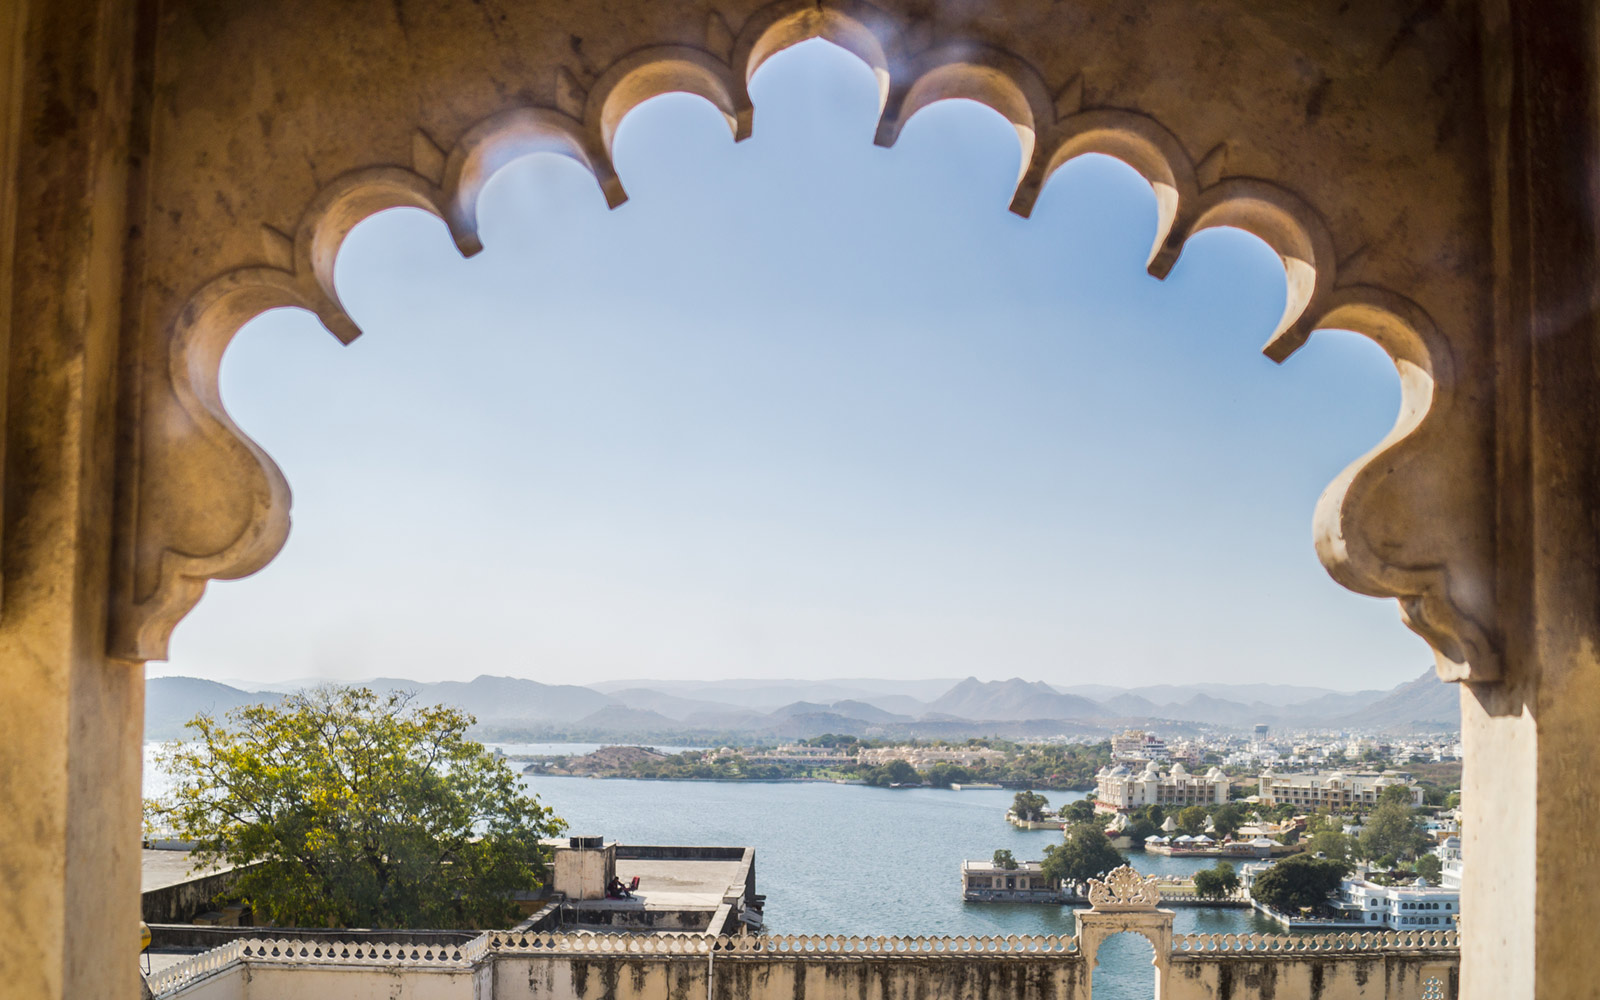 Palace and Lake Pichola, Udaipur, Rajasthan, India